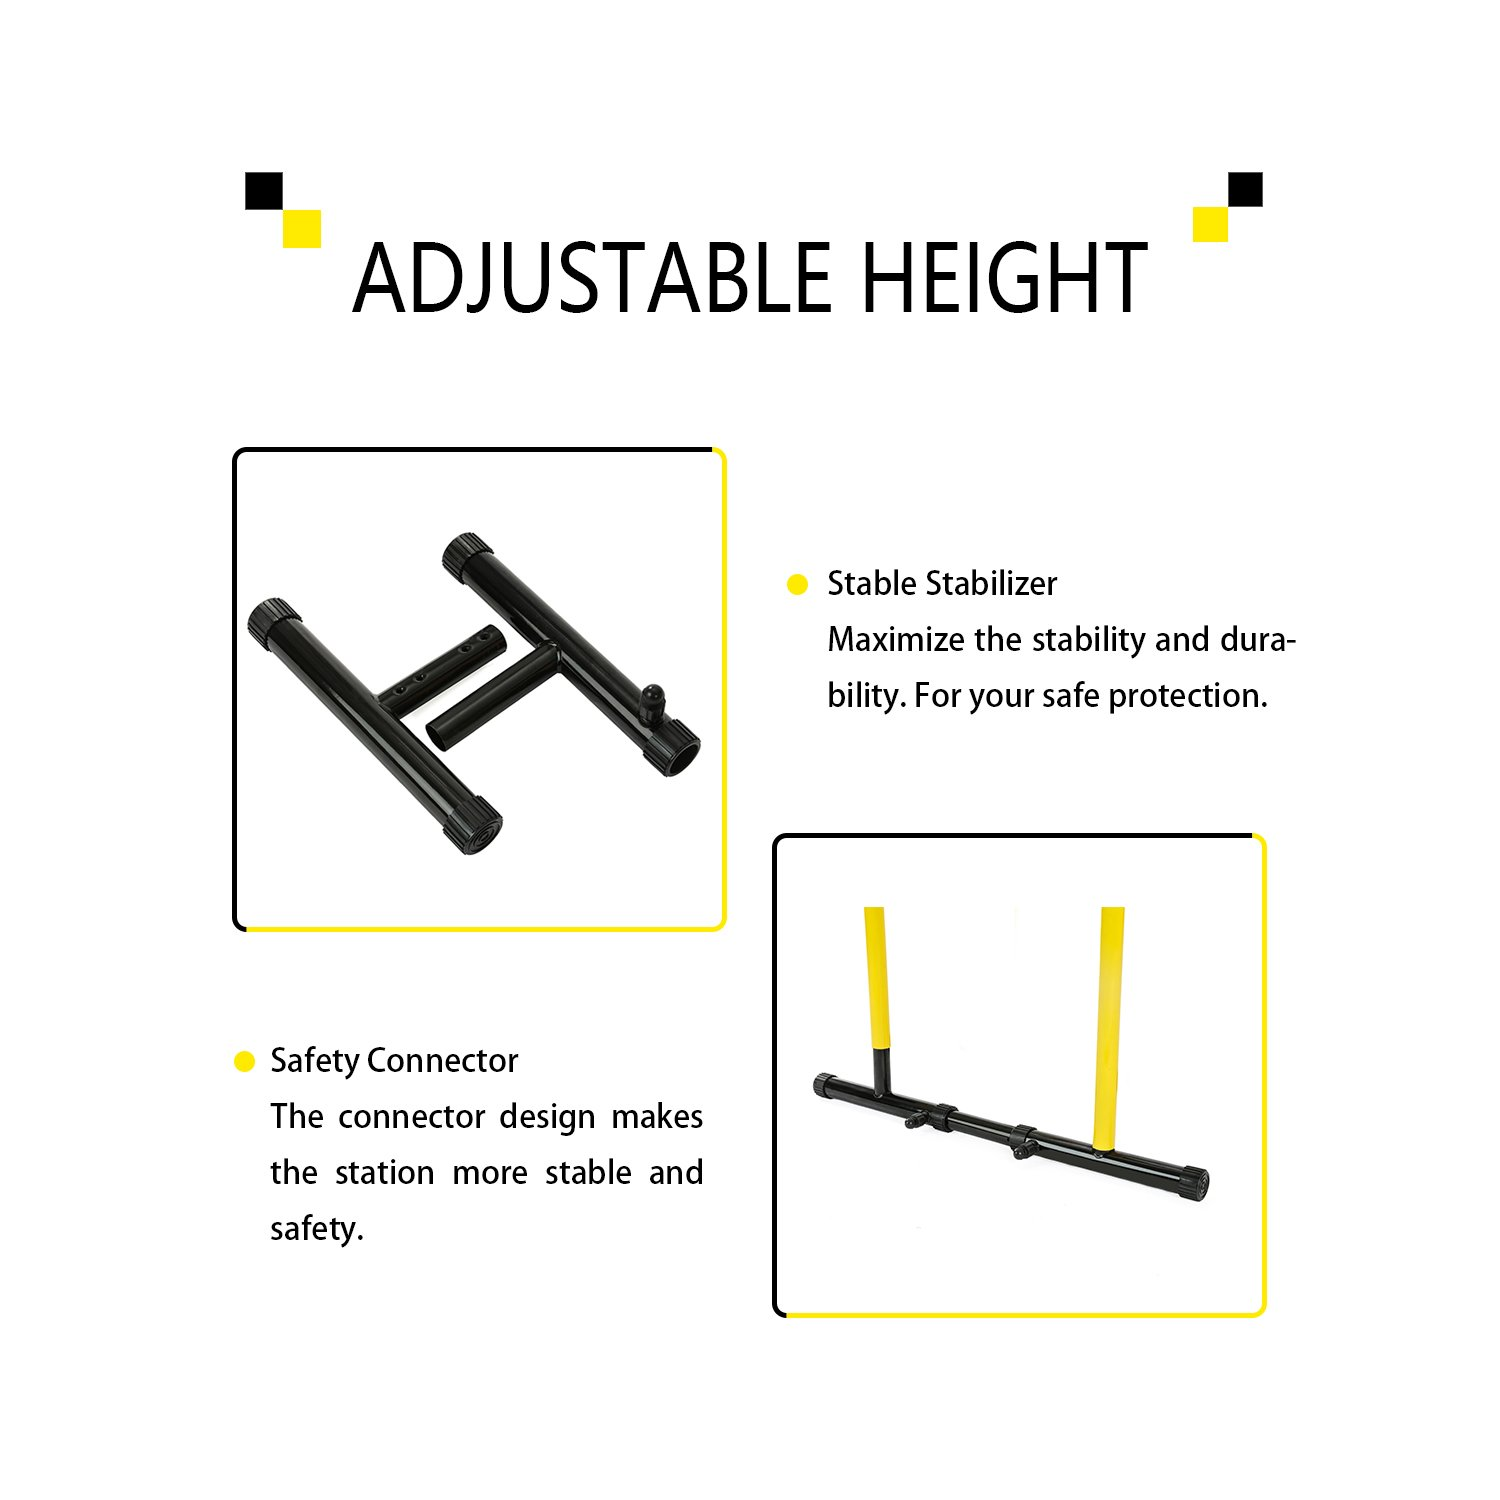 RELIFE REBUILD YOUR LIFE Dip Station Functional Heavy Duty Dip Stands Fitness Workout Dip bar Station Stabilizer Parallette Push Up Stand by RELIFE REBUILD YOUR LIFE (Image #5)